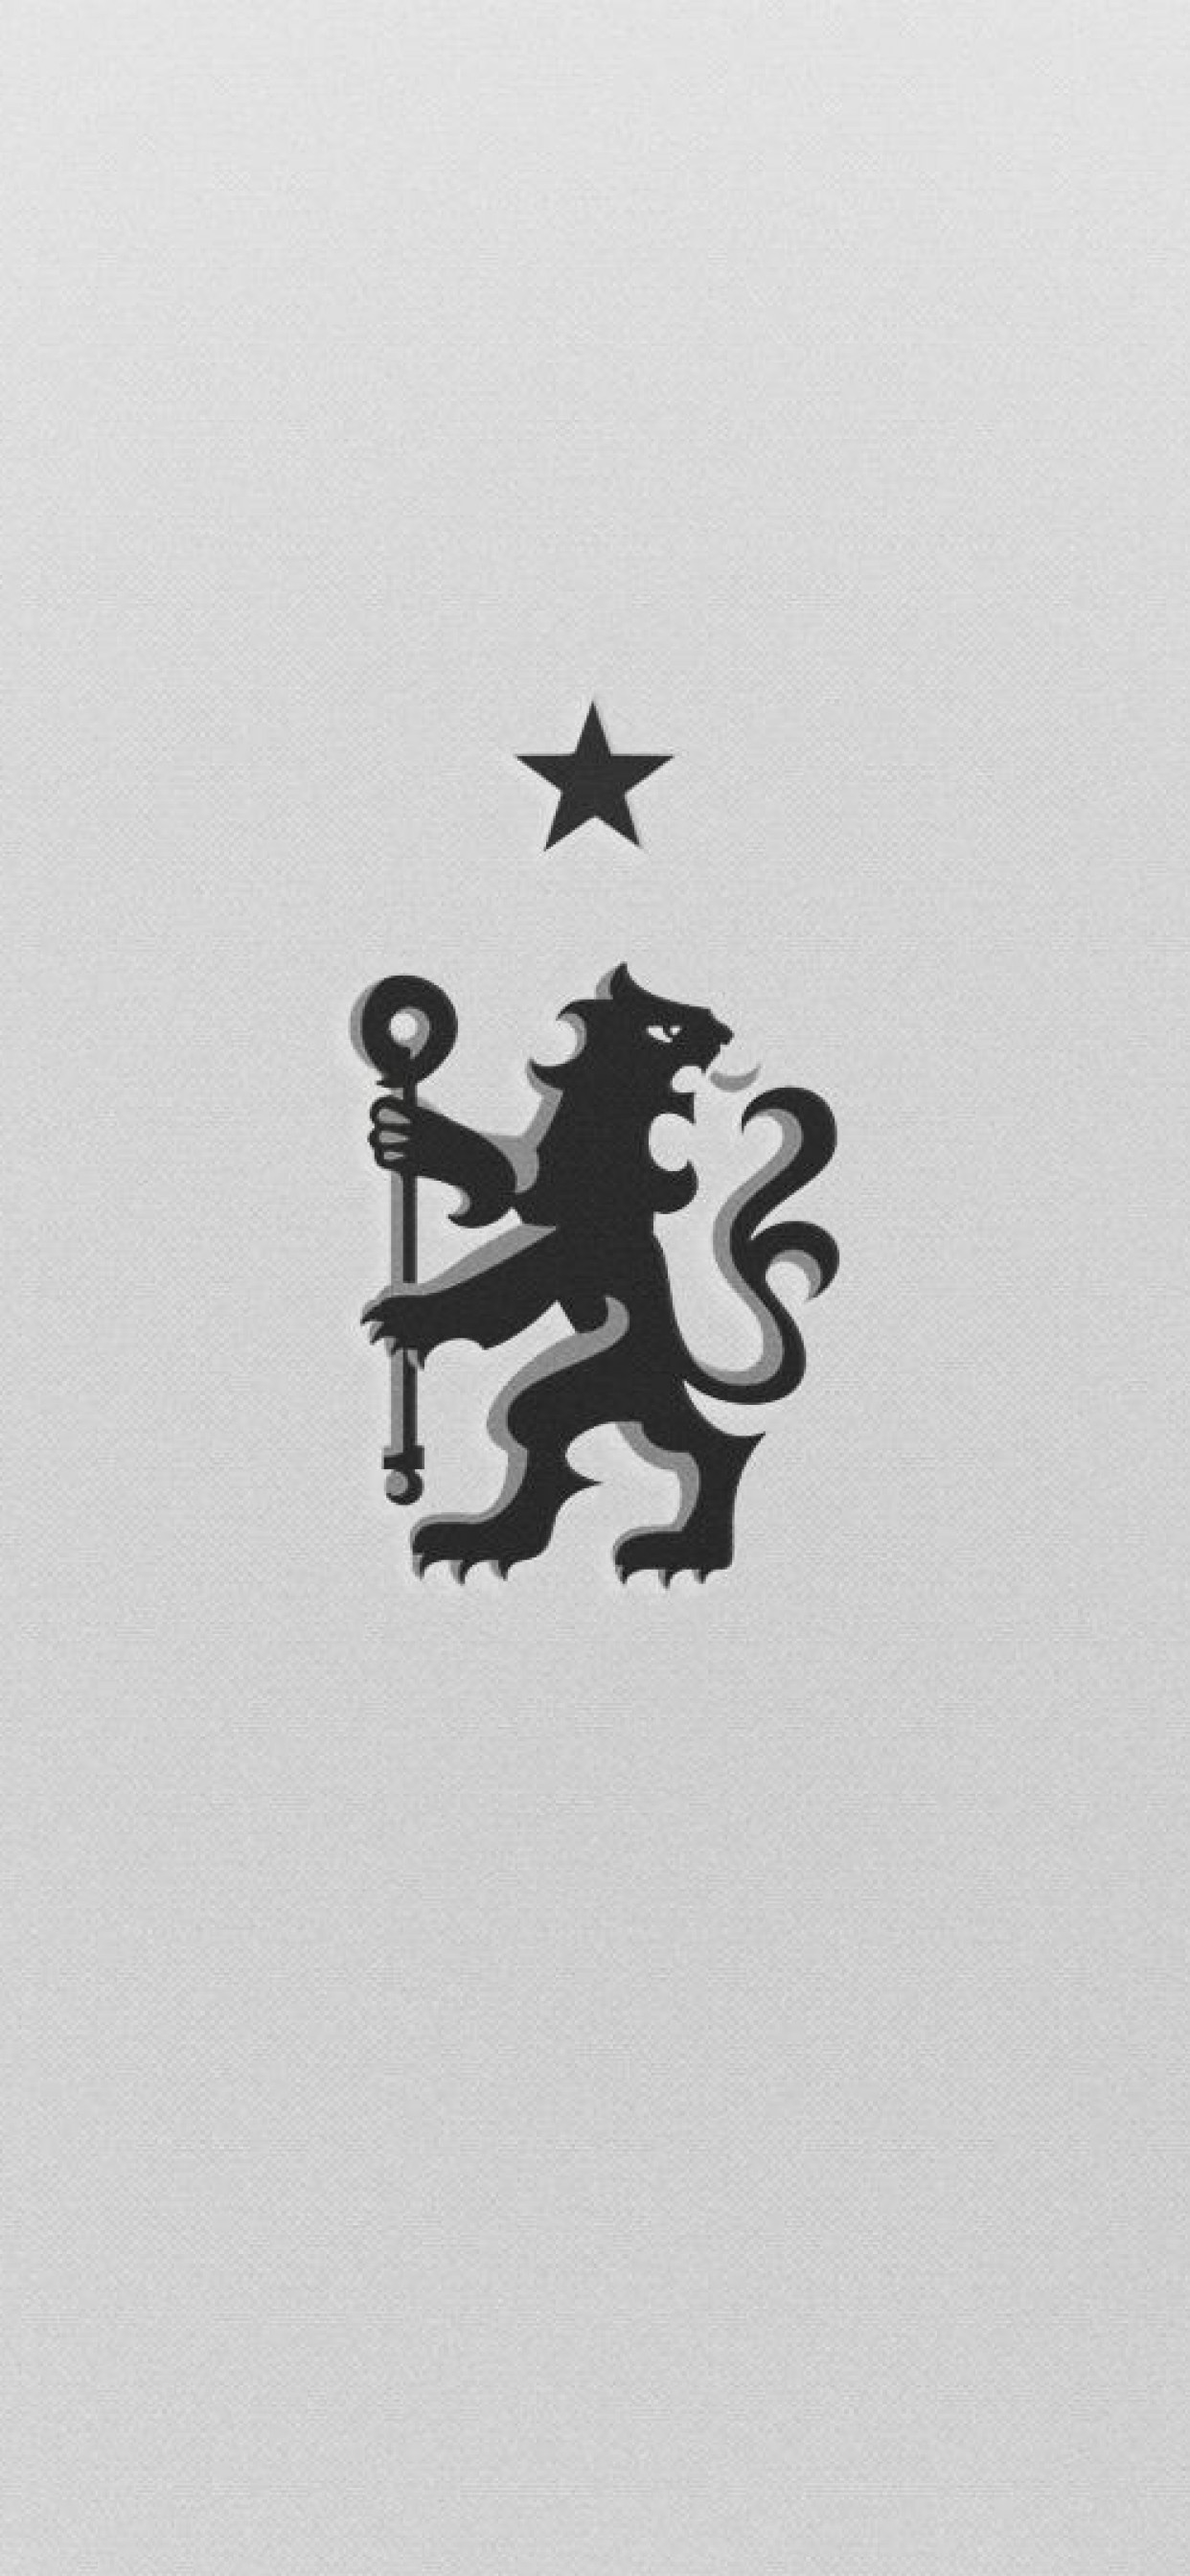 Iphone Xs Max Chelsea Wallpaper Chelsea Fc 259188 Hd